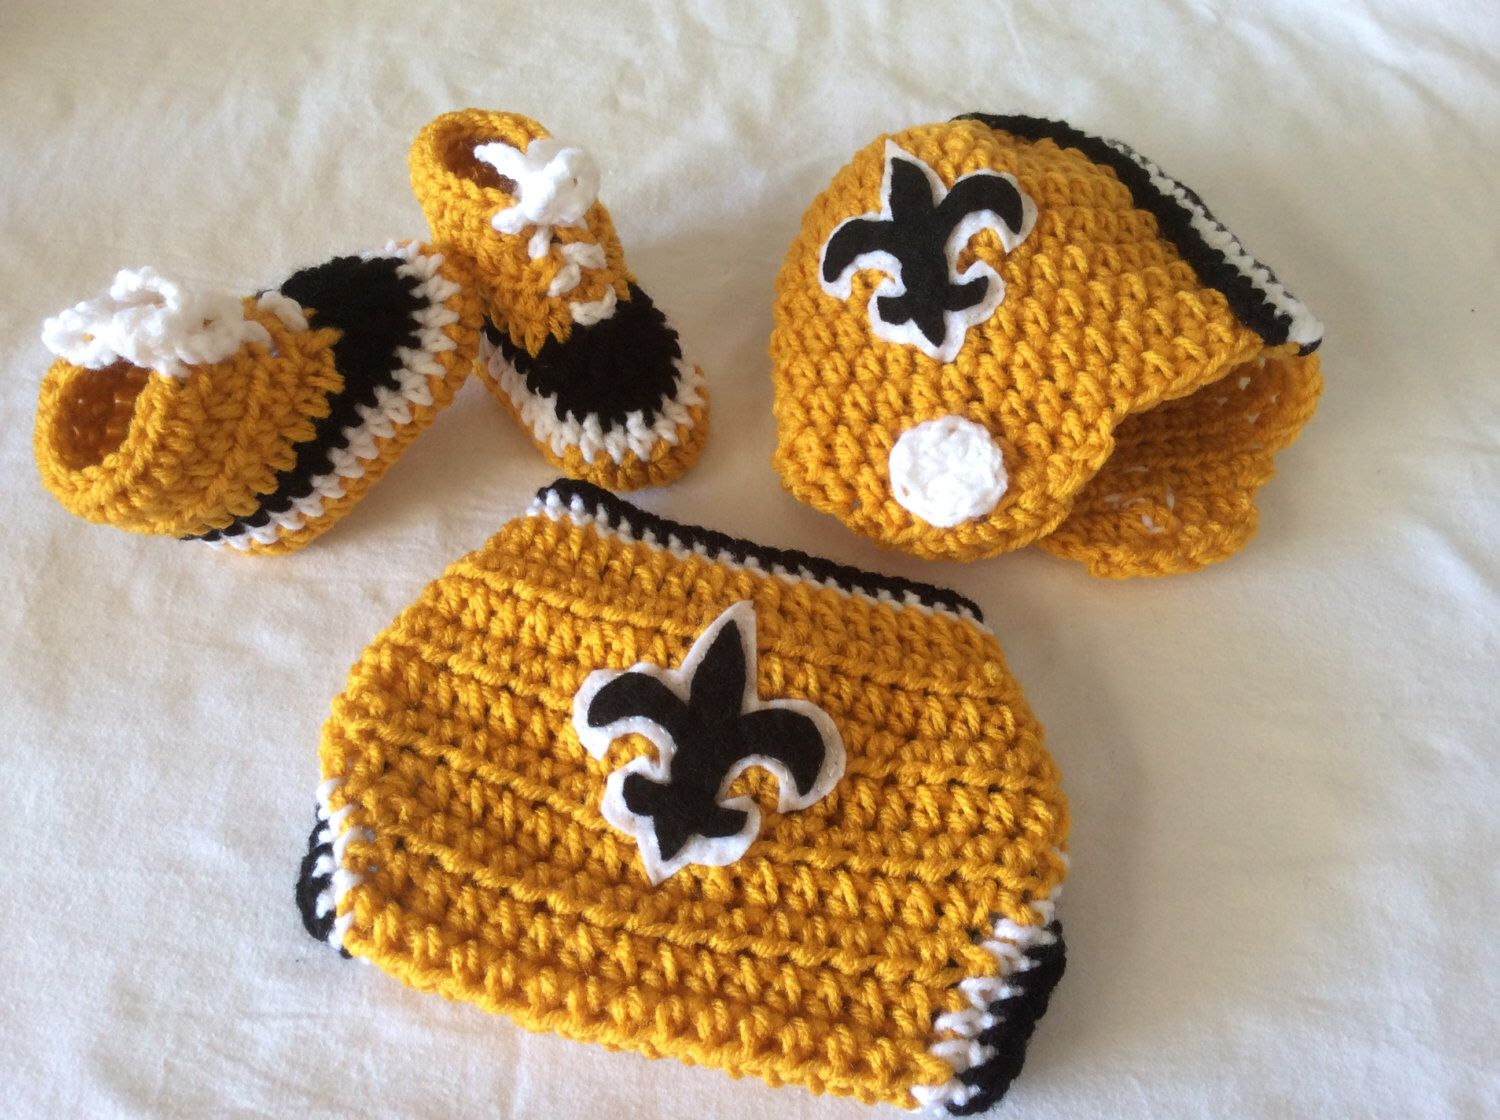 Free shipping baby crochet football hat diaper cover and shoes free shipping baby crochet football hat diaper cover and shoes new orleans bankloansurffo Choice Image